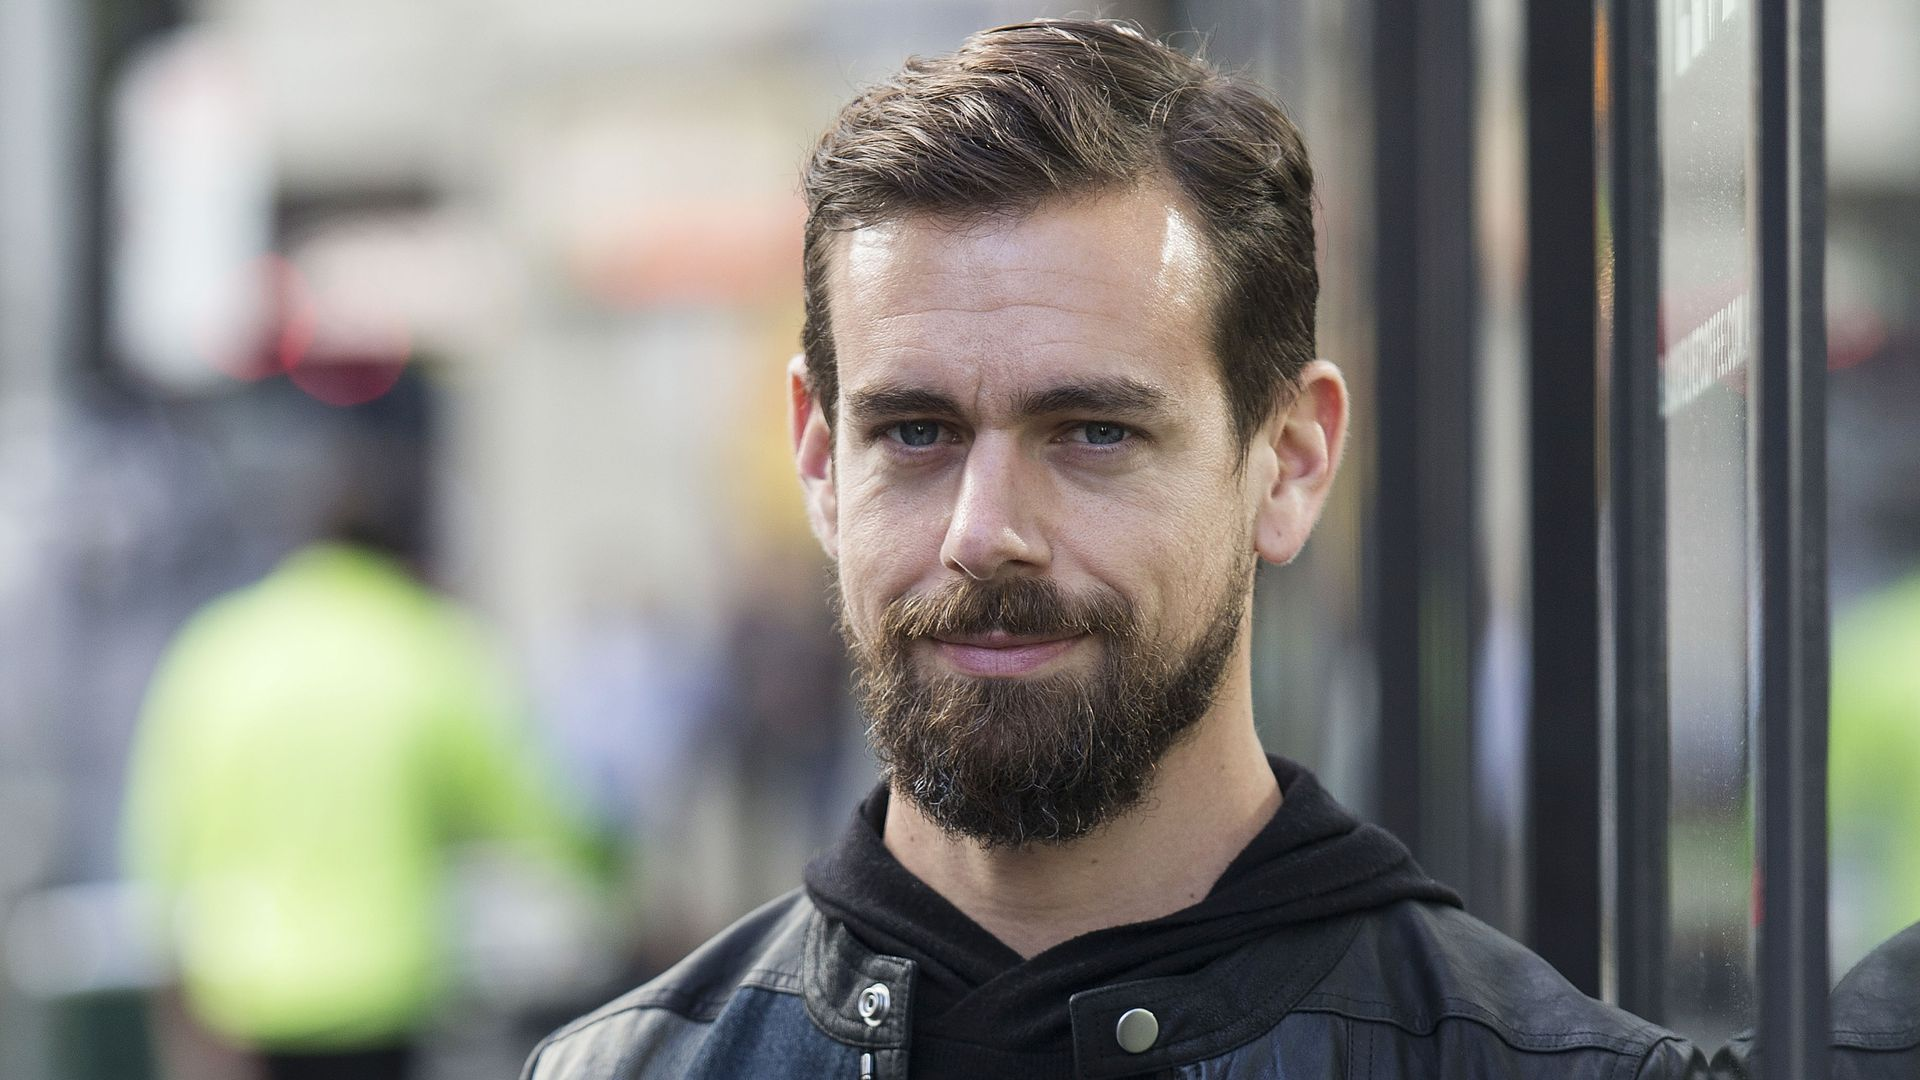 Twitter CEO Jack Dorsey in a black coat